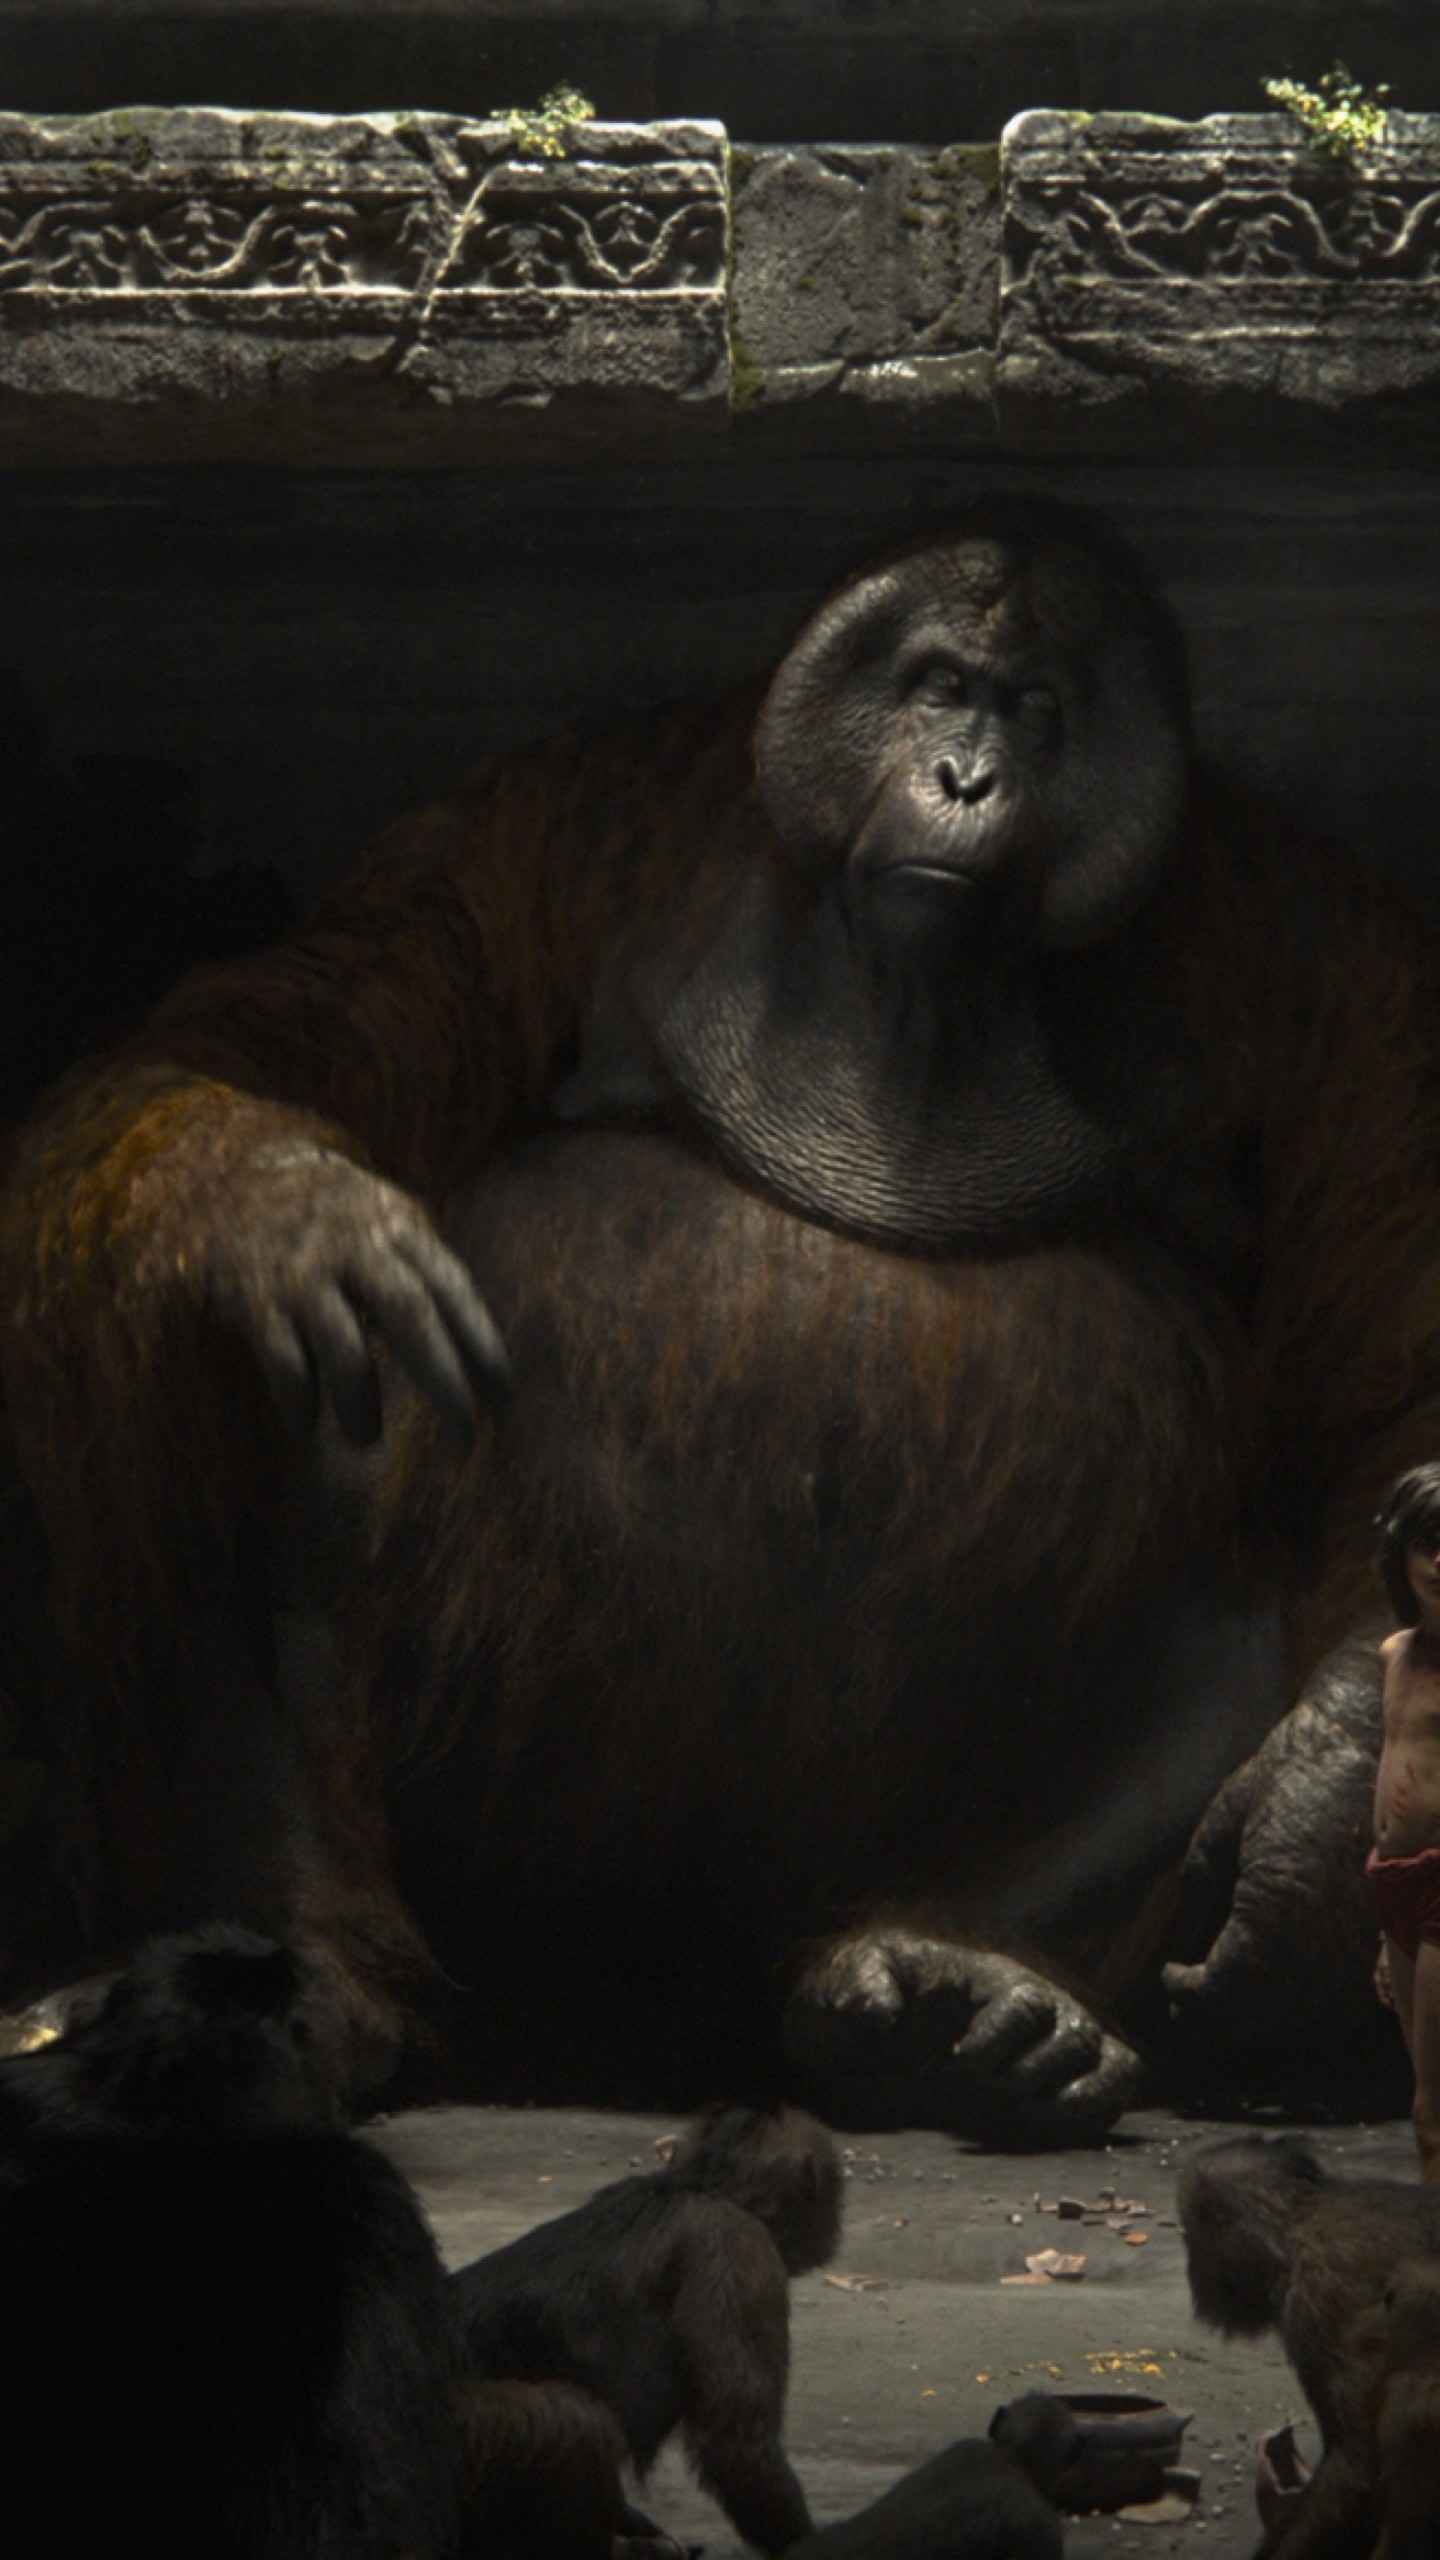 who plays king louie in the jungle book movie